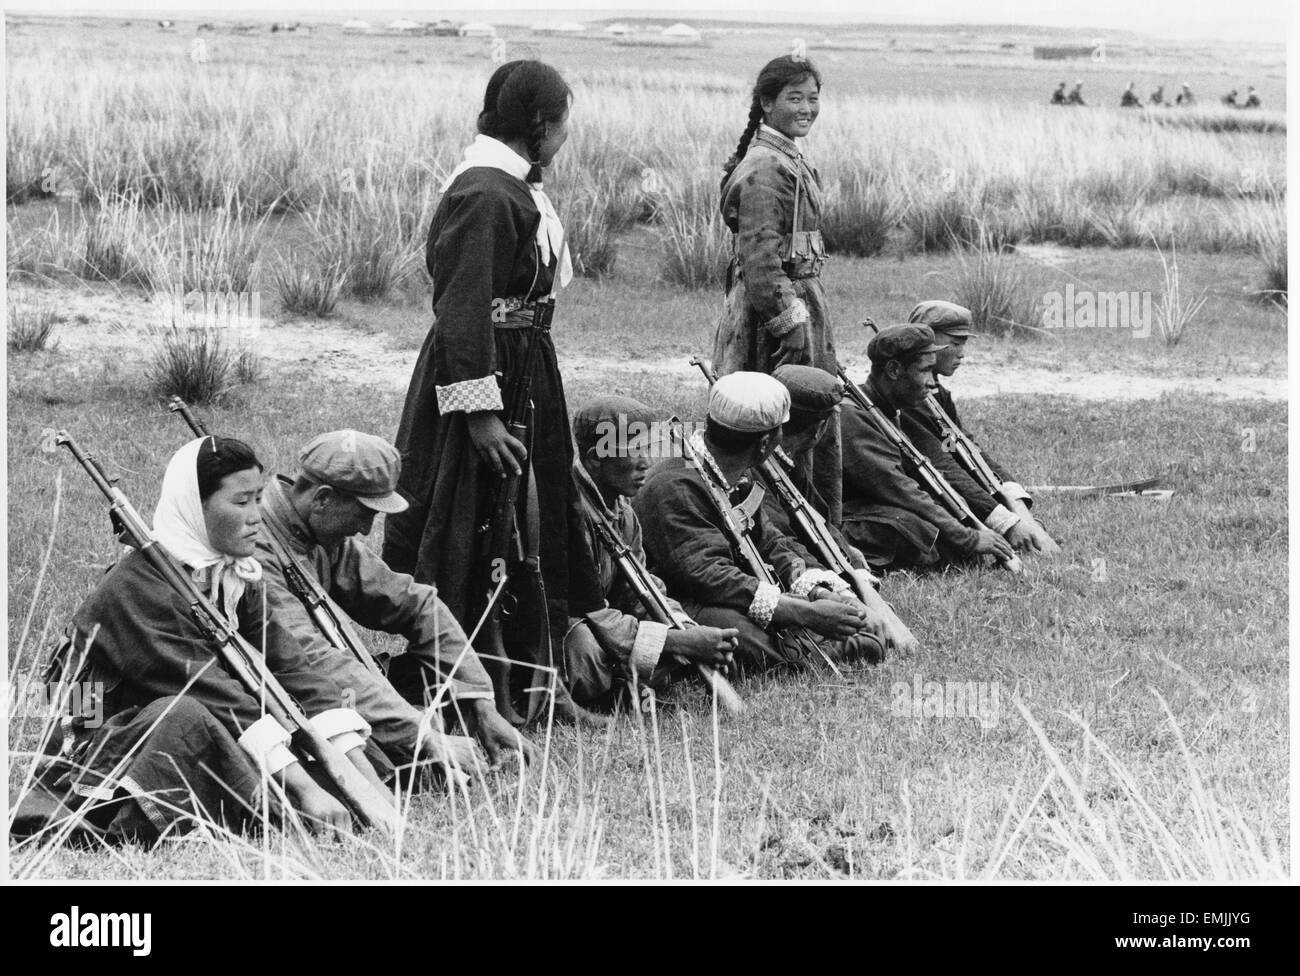 """""""Militia Team in Shilingala Inner Mongolia"""", Film Still, from the Documentary Film 'Report from China', - Stock Image"""